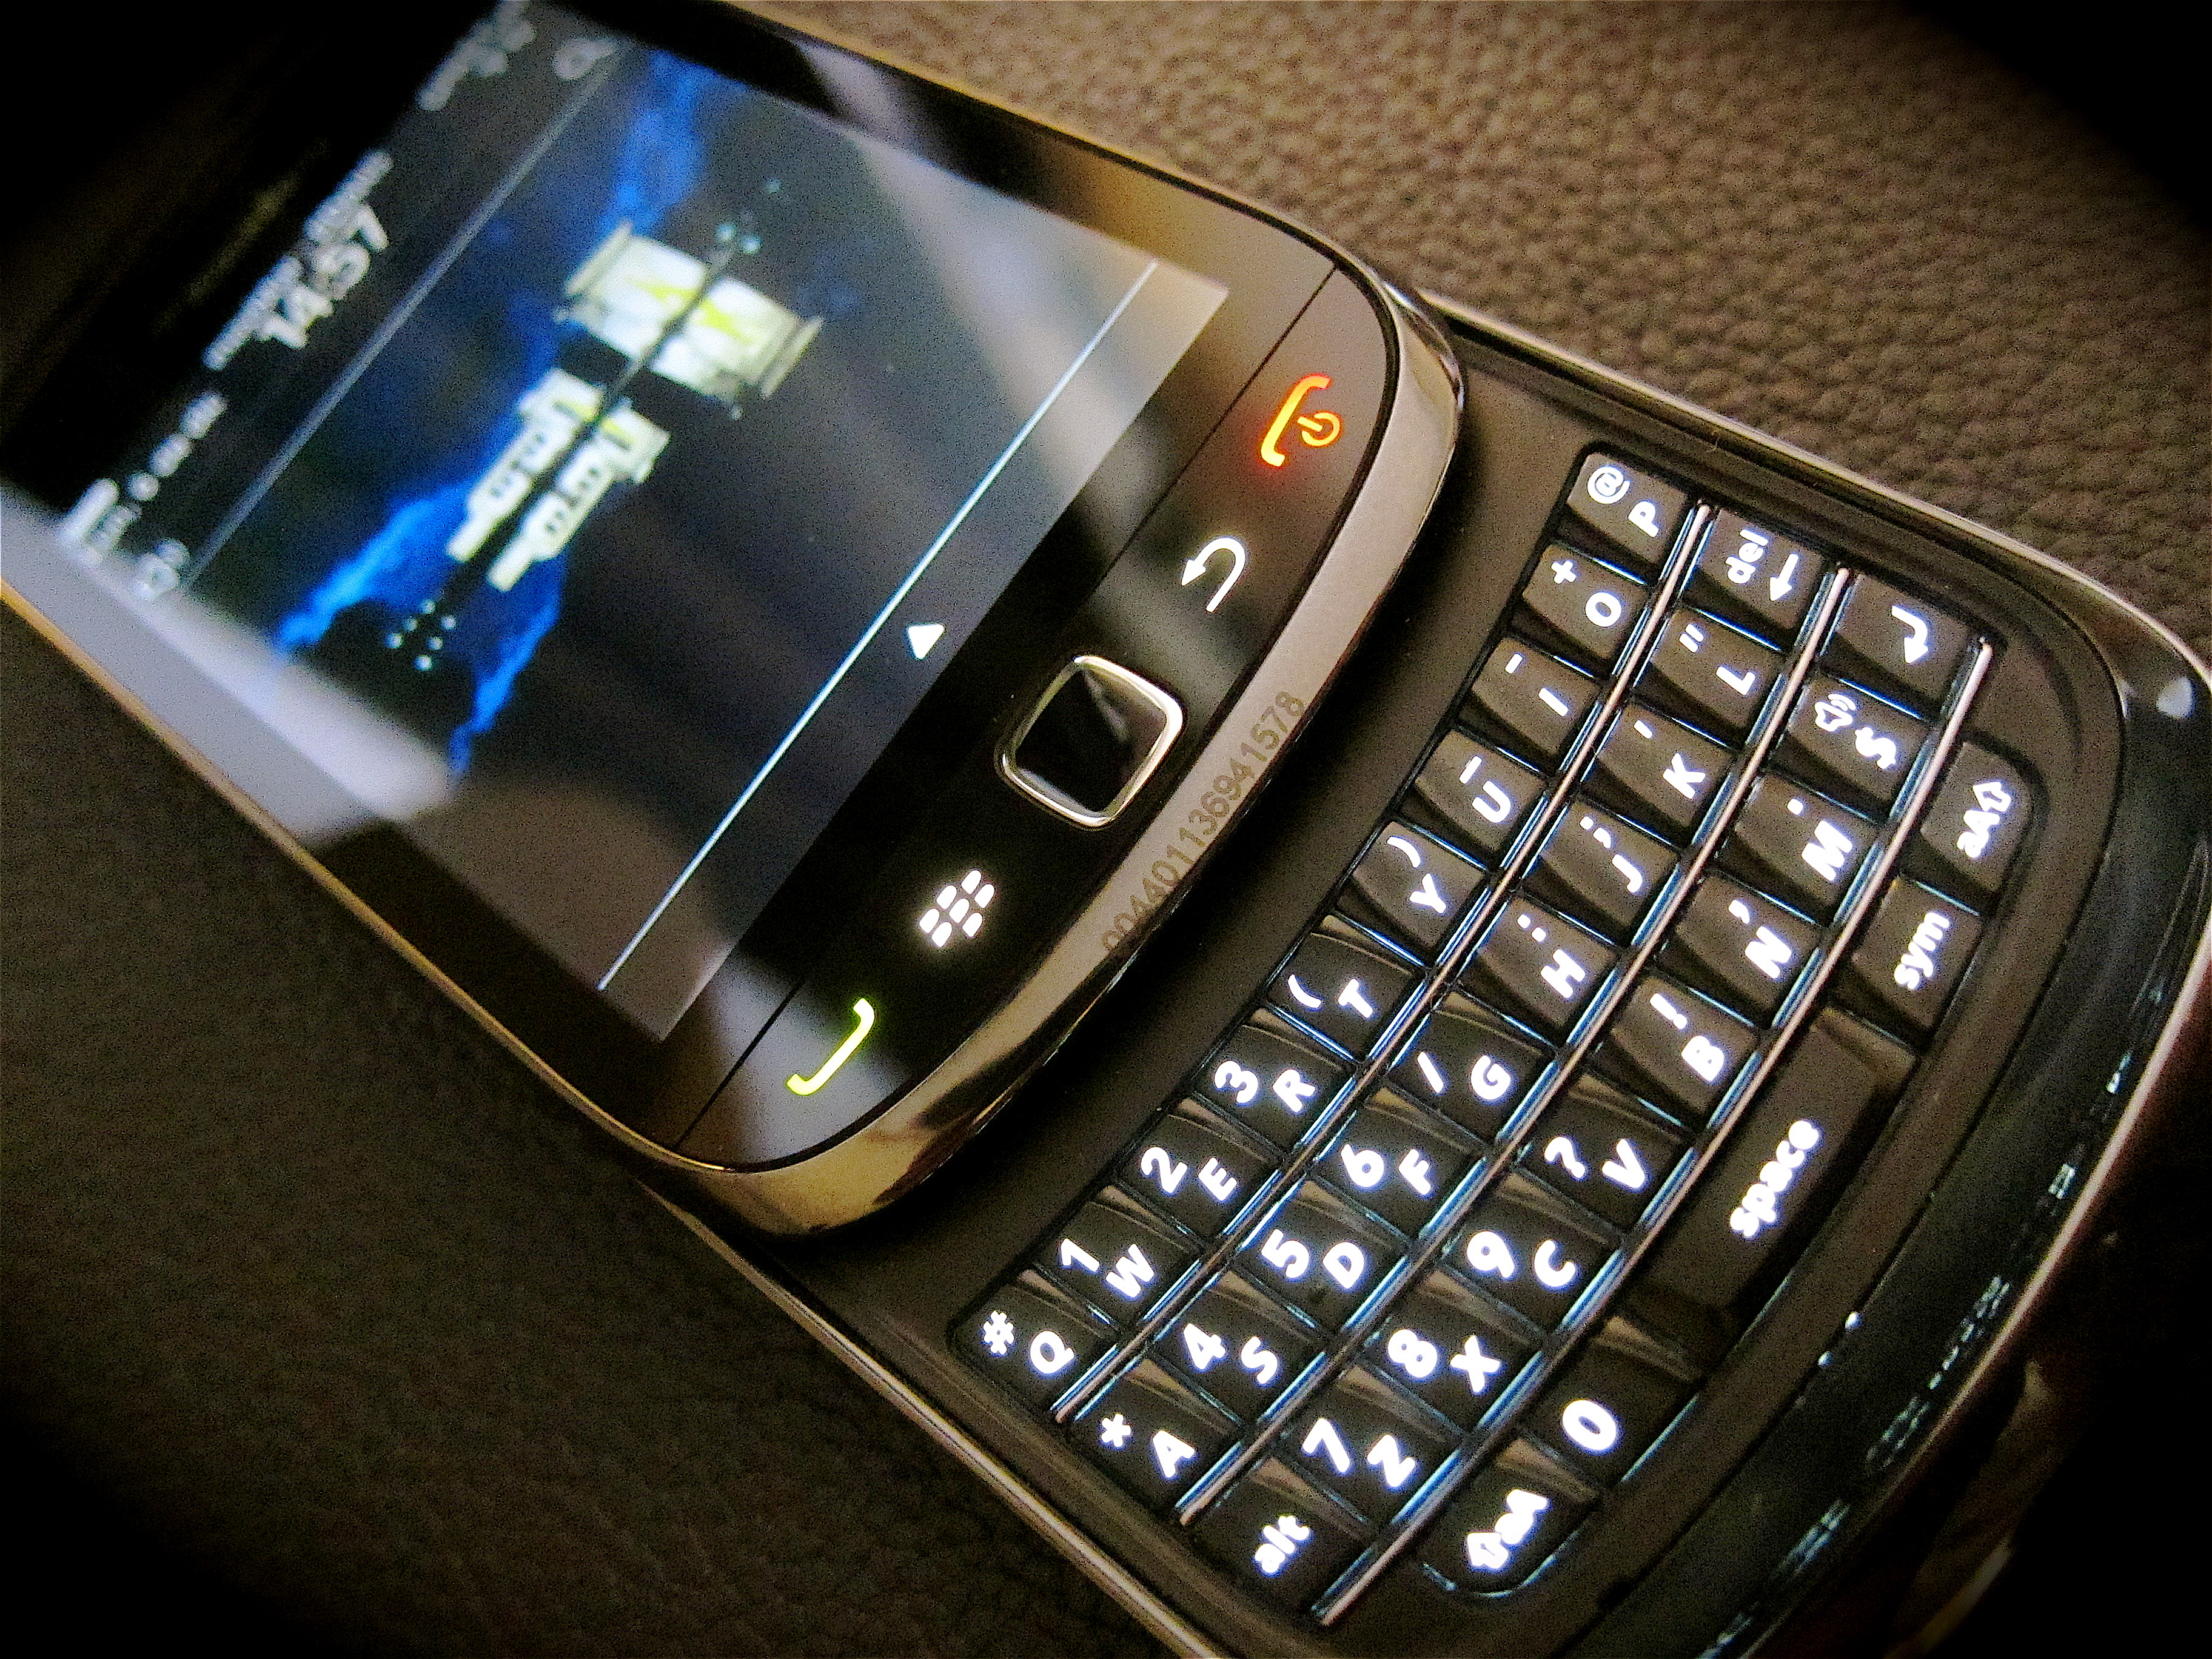 BlackBerry Torch - Wikipedia